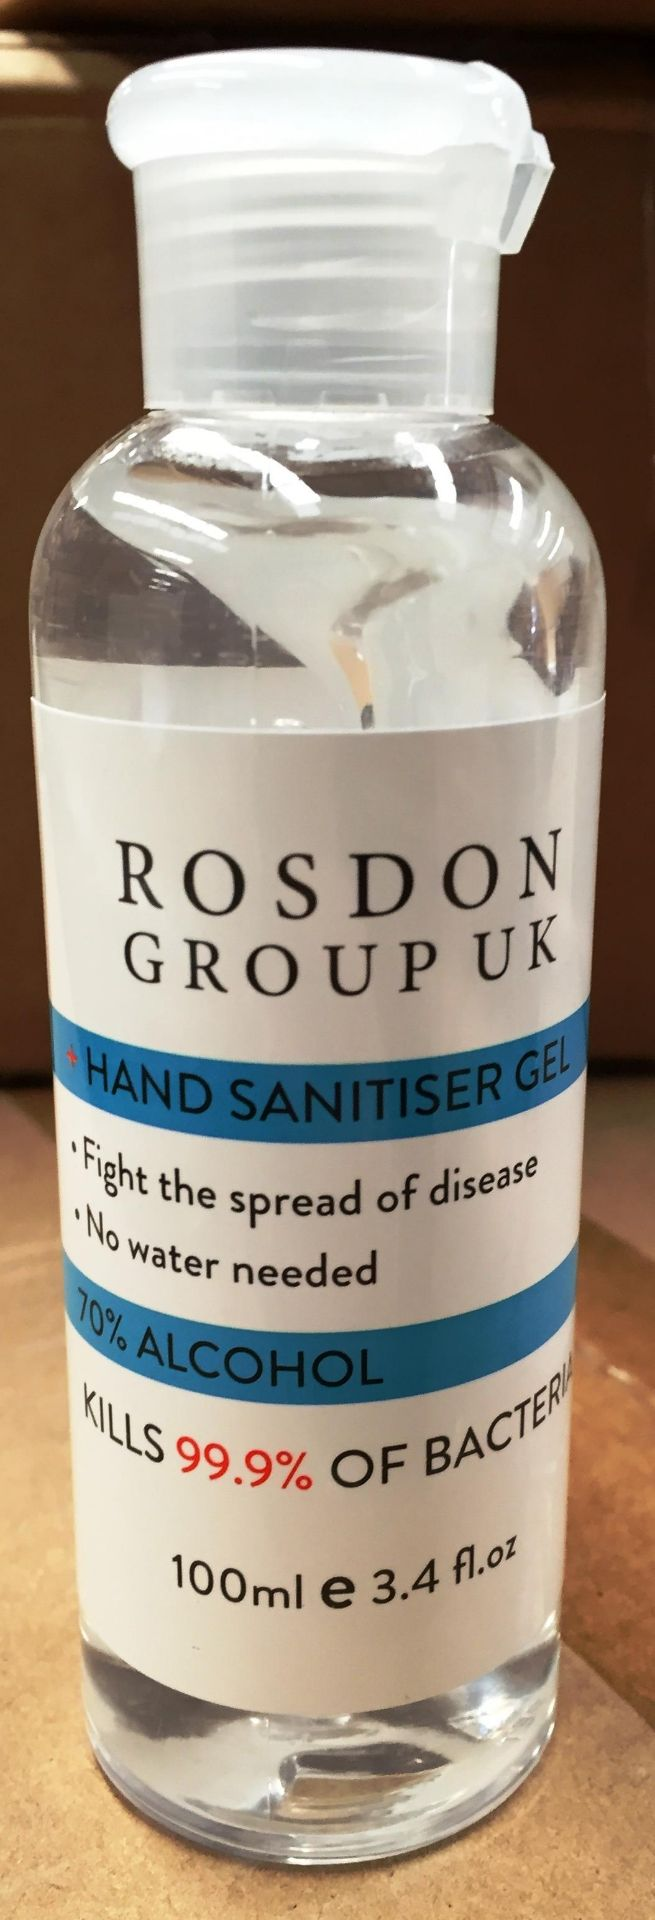 1 x box Rosdon Group Ltd 100ml hand sanitiser (192 units per box)